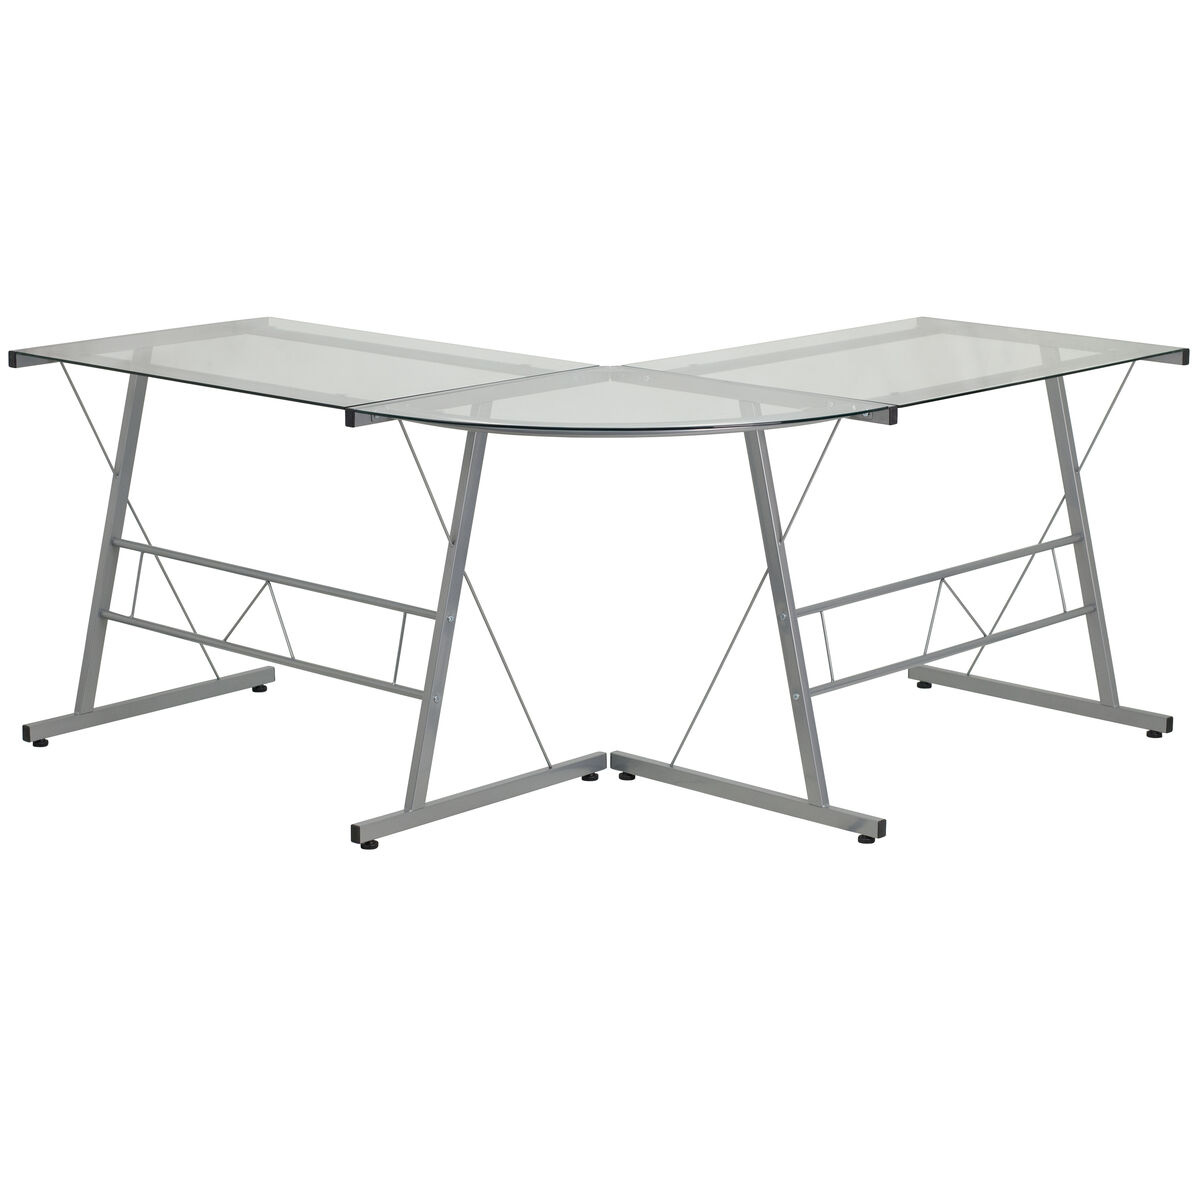 Our Glass L Shape Computer Desk With Silver Metal Frame Is On Sale Now